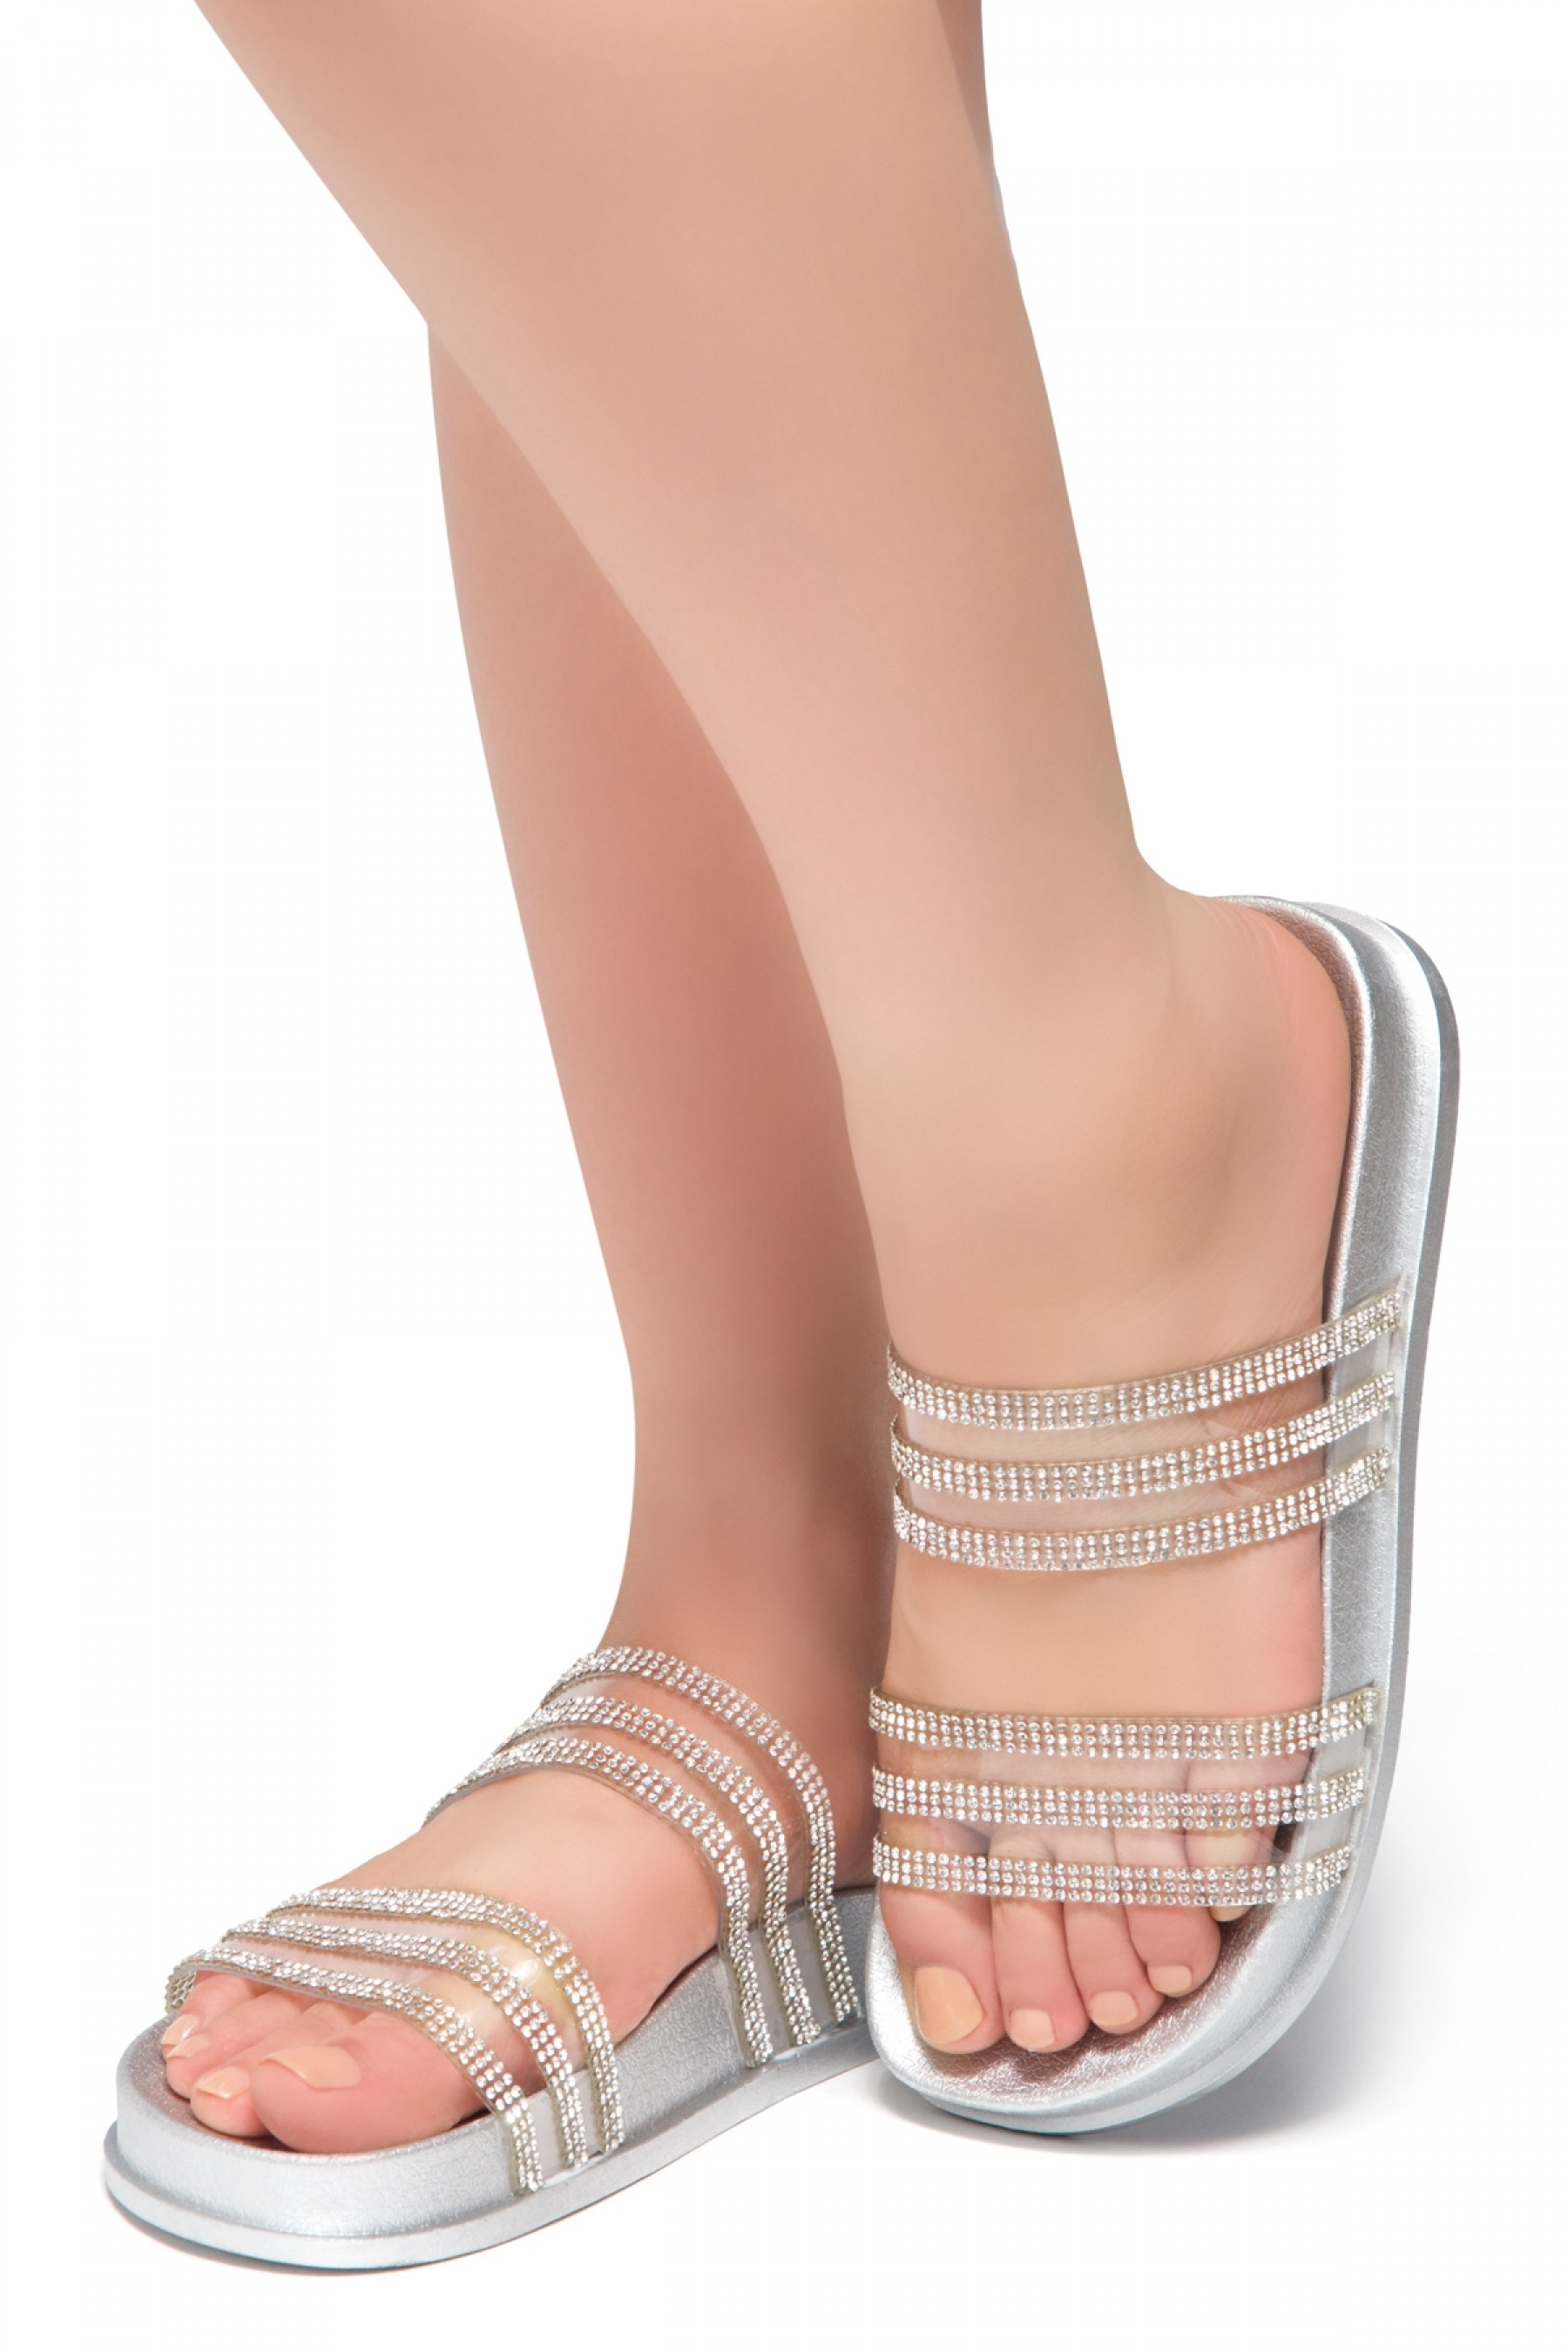 HerStyle Corey-Open Toe Open Back Jewelled Embellishment Slide Sandal (Silver)